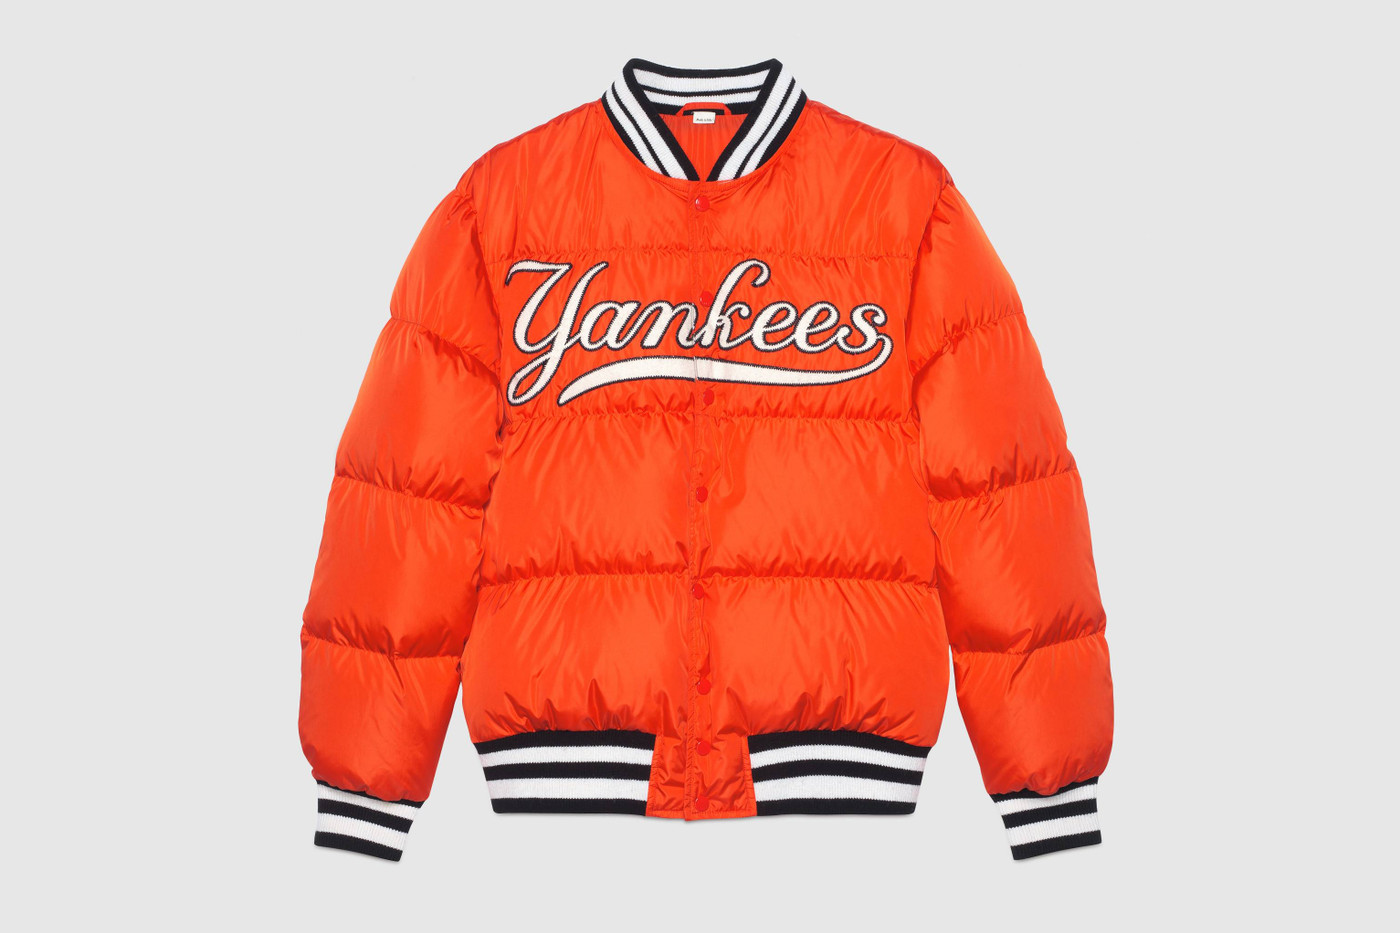 Gucci and NY Yankees Team Up On Apparel Collection